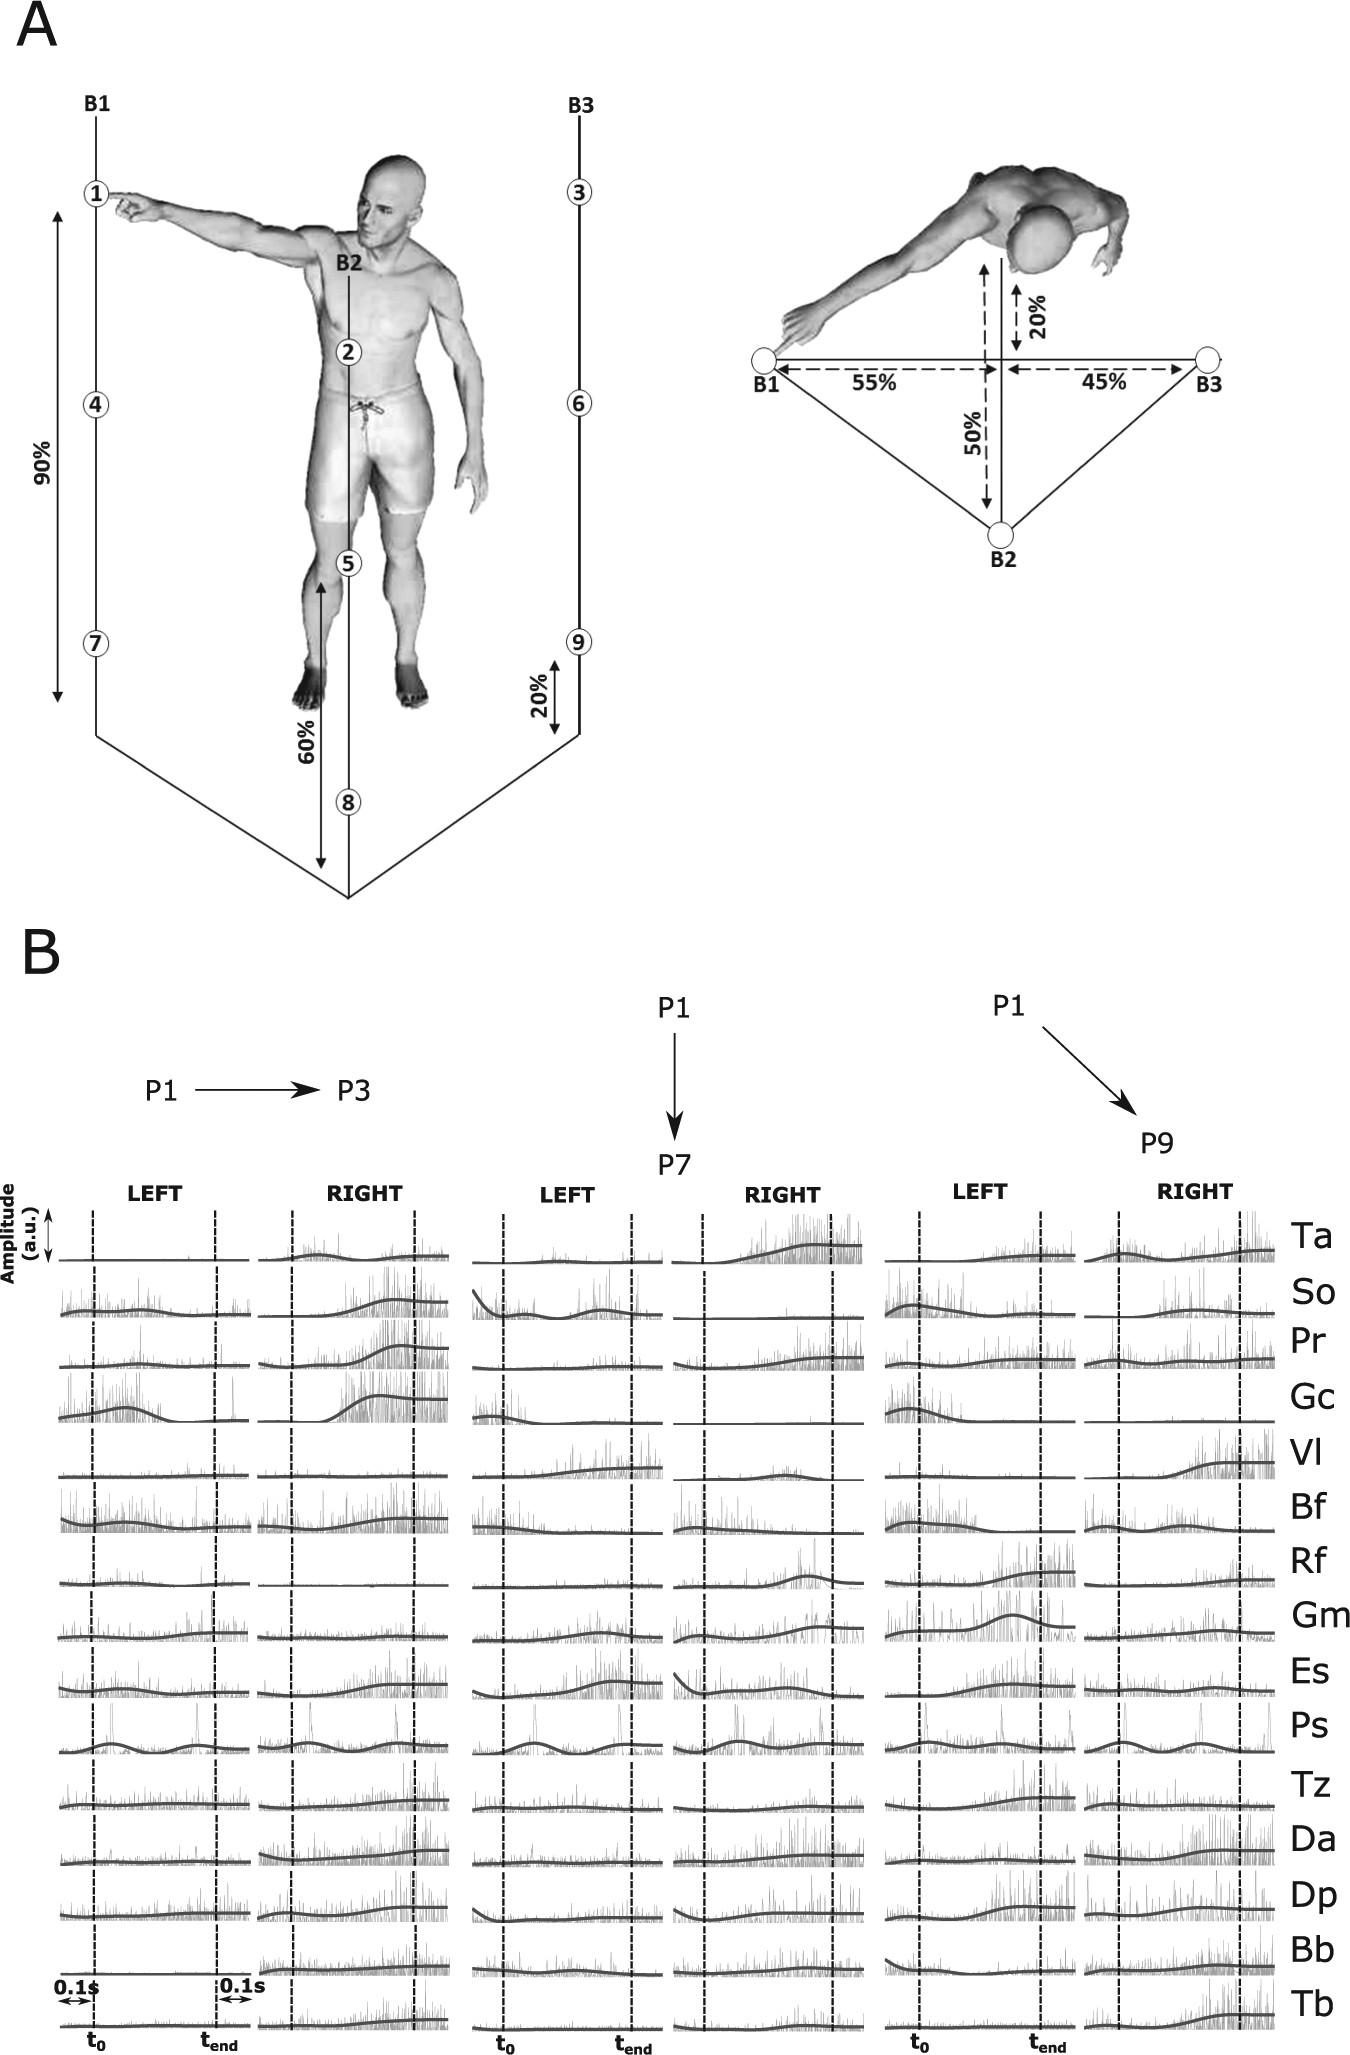 Deciphering The Functional Role Of Spatial And Temporal Muscle Figure 17 Block Diagram For Human Arm Movement Based Emg Signal Synergies In Whole Body Movements Scientific Reports